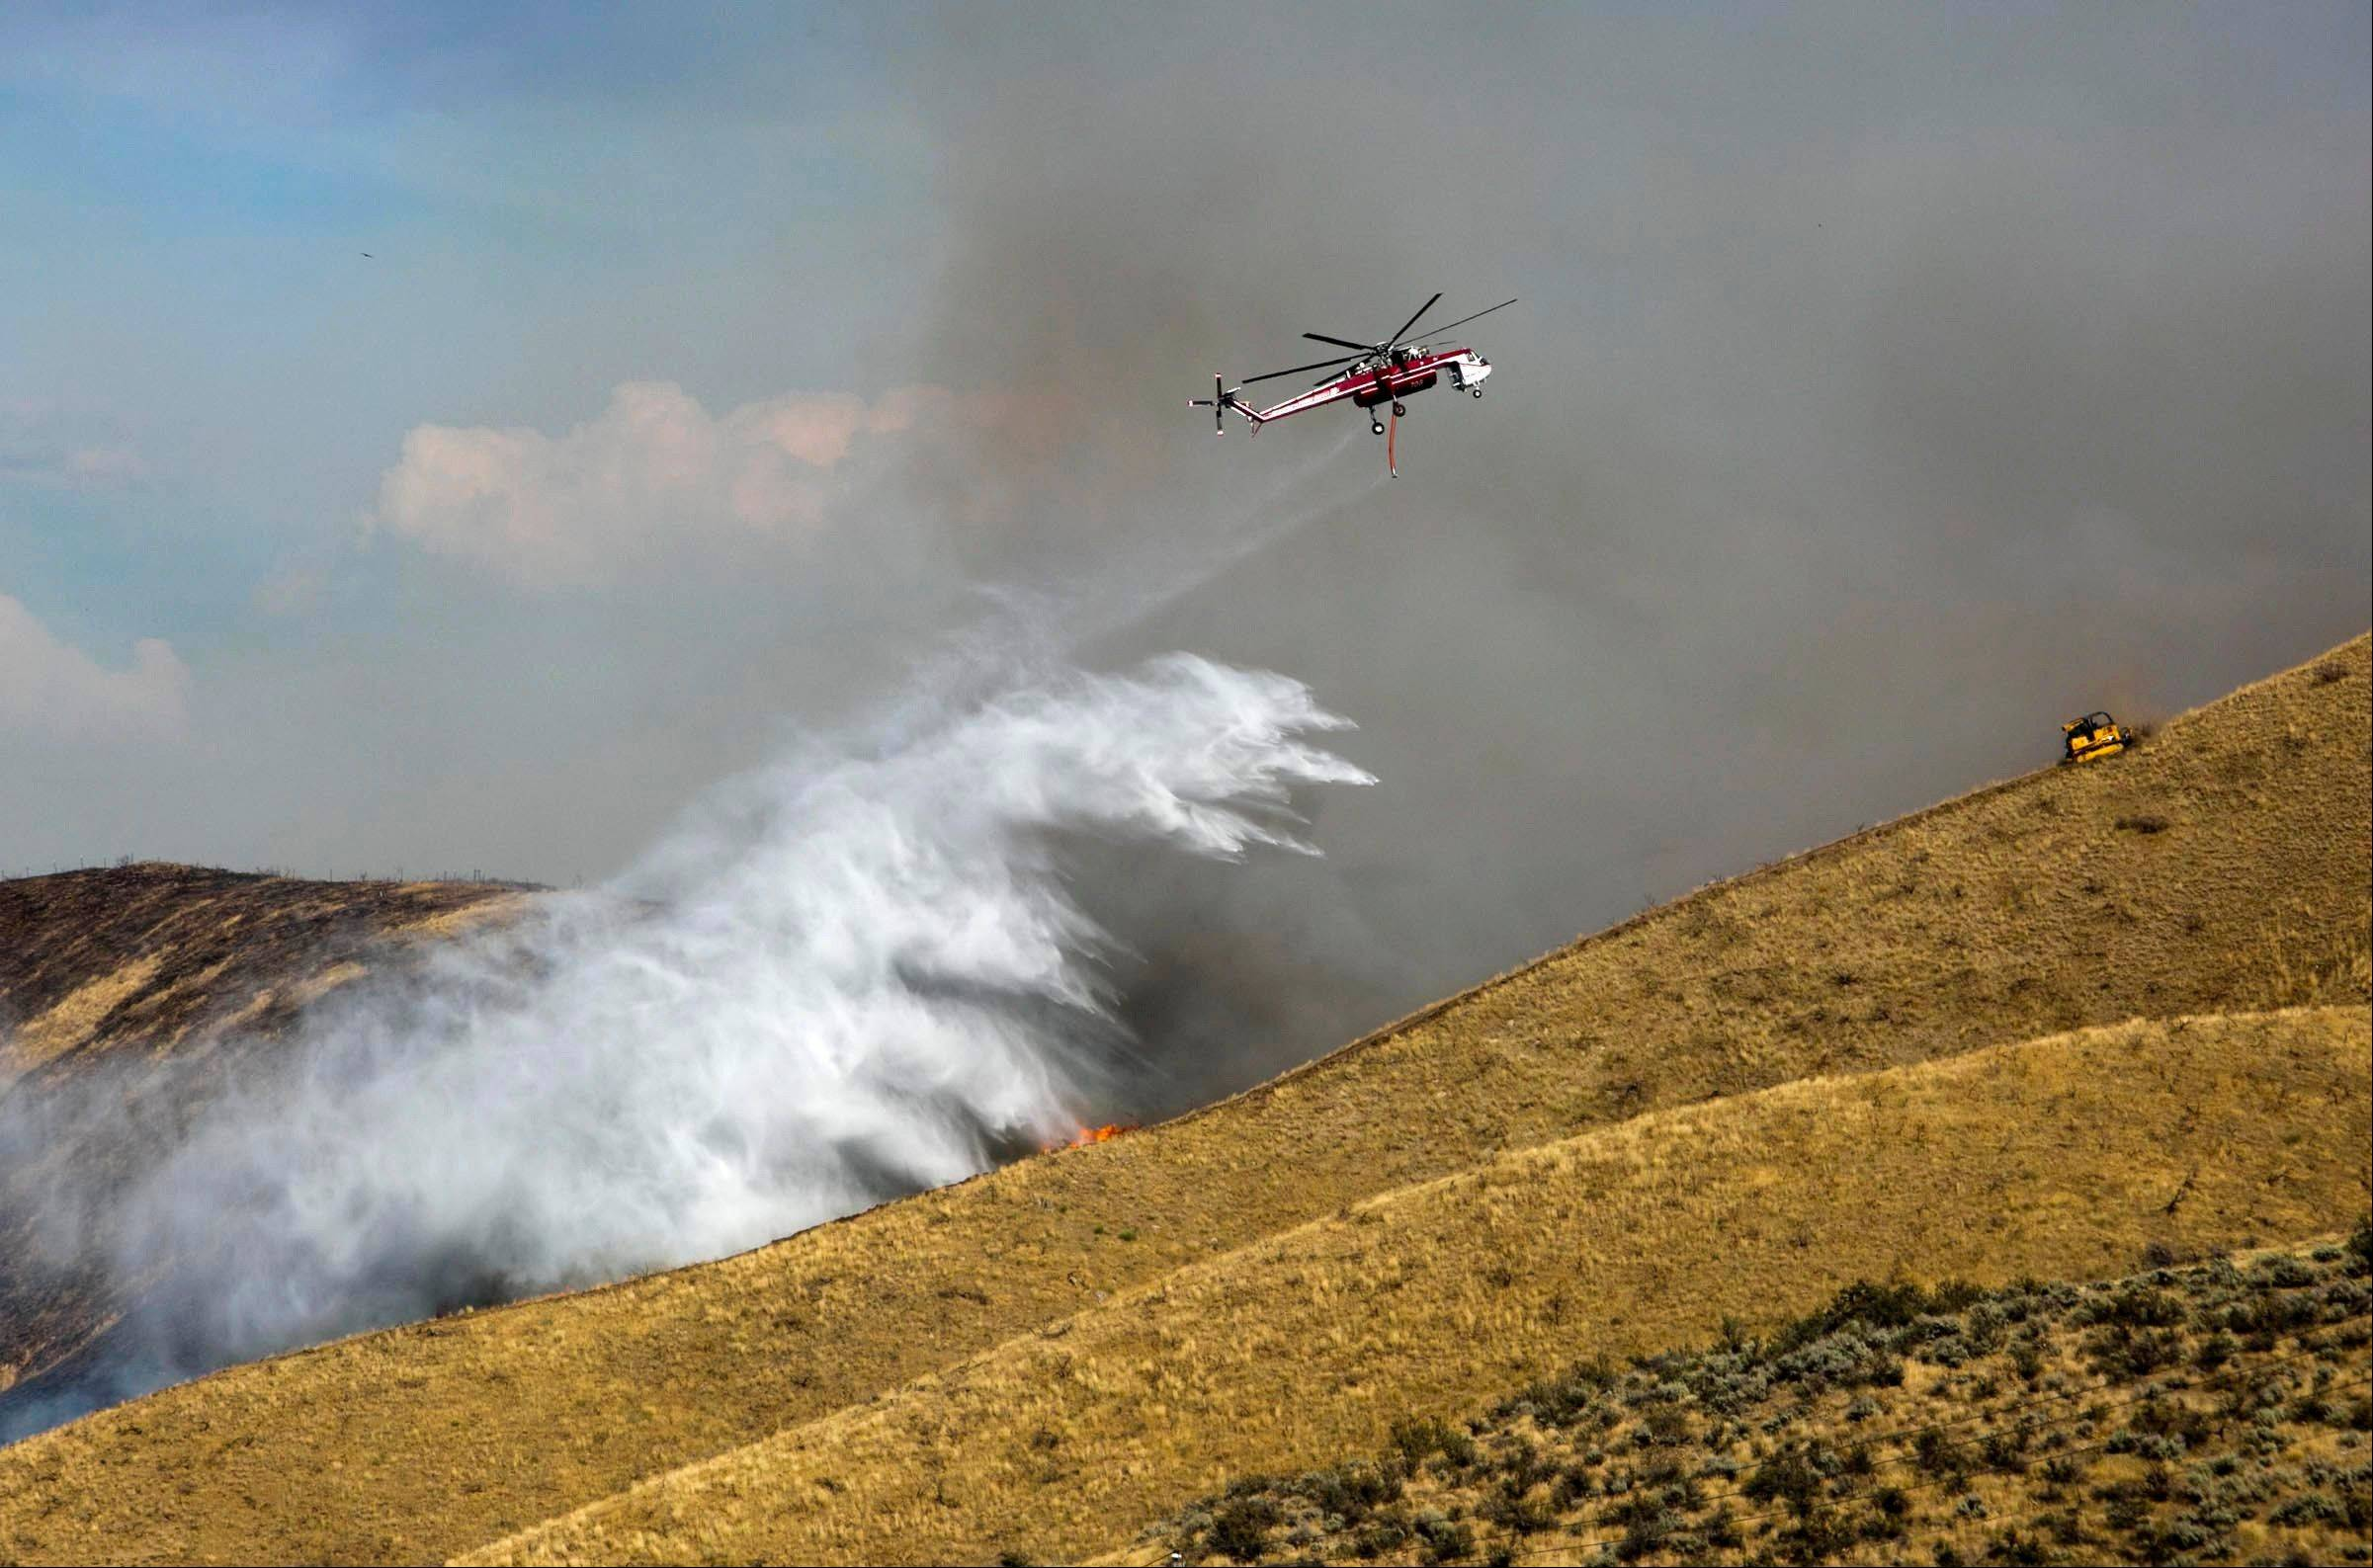 A fire attack helicopter drops water along a draw northeast of Hilltop Cafe on Idaho 21 as a bulldozer plows a fire line on the ridge Tuesday Aug. 20, 2013 northeast of Boise. The National Interagency Fire Center in Boise raised the wildfire preparedness level Tuesday to the highest level for the first time in five years and listed two central Idaho wildfires as the country's top priorities.